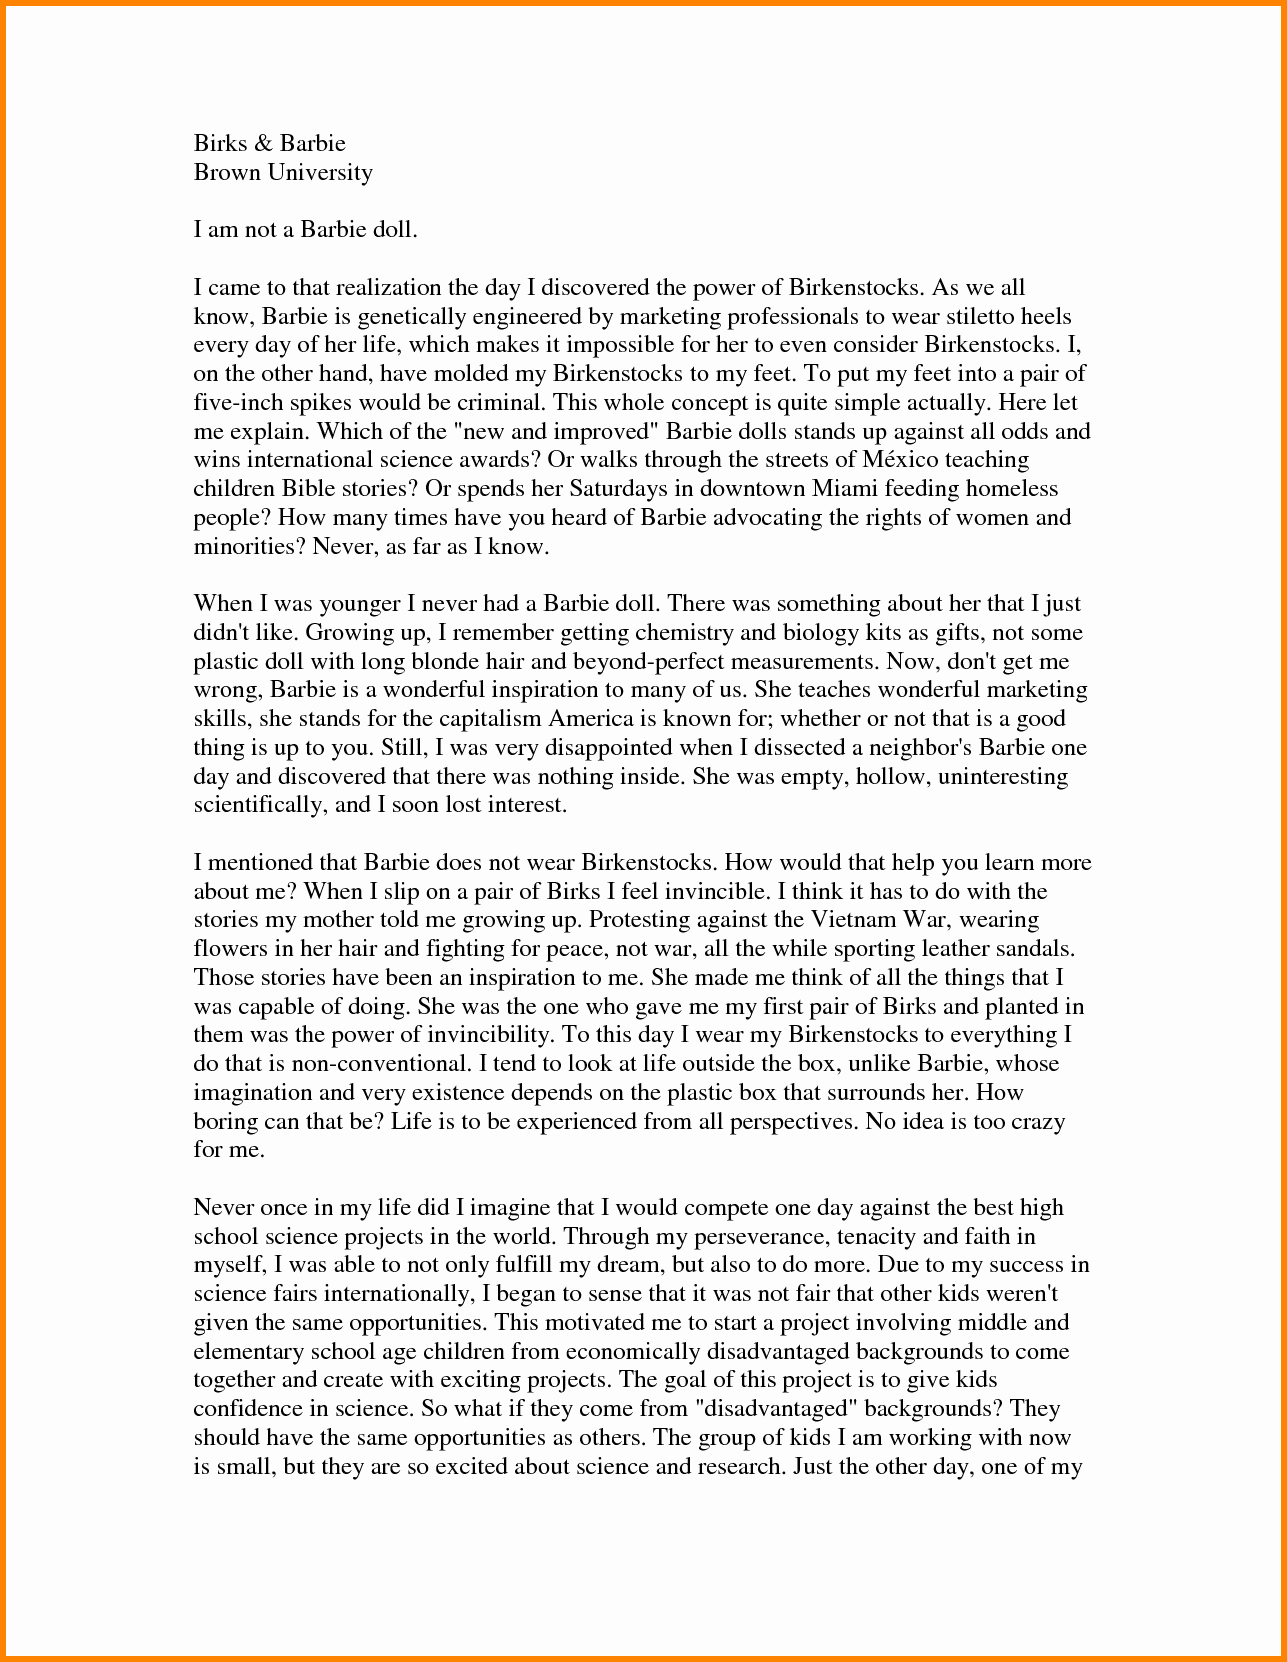 Personal Essay About Yourself Examples Fresh 48 Personal Essay Examples for College Personal Essay